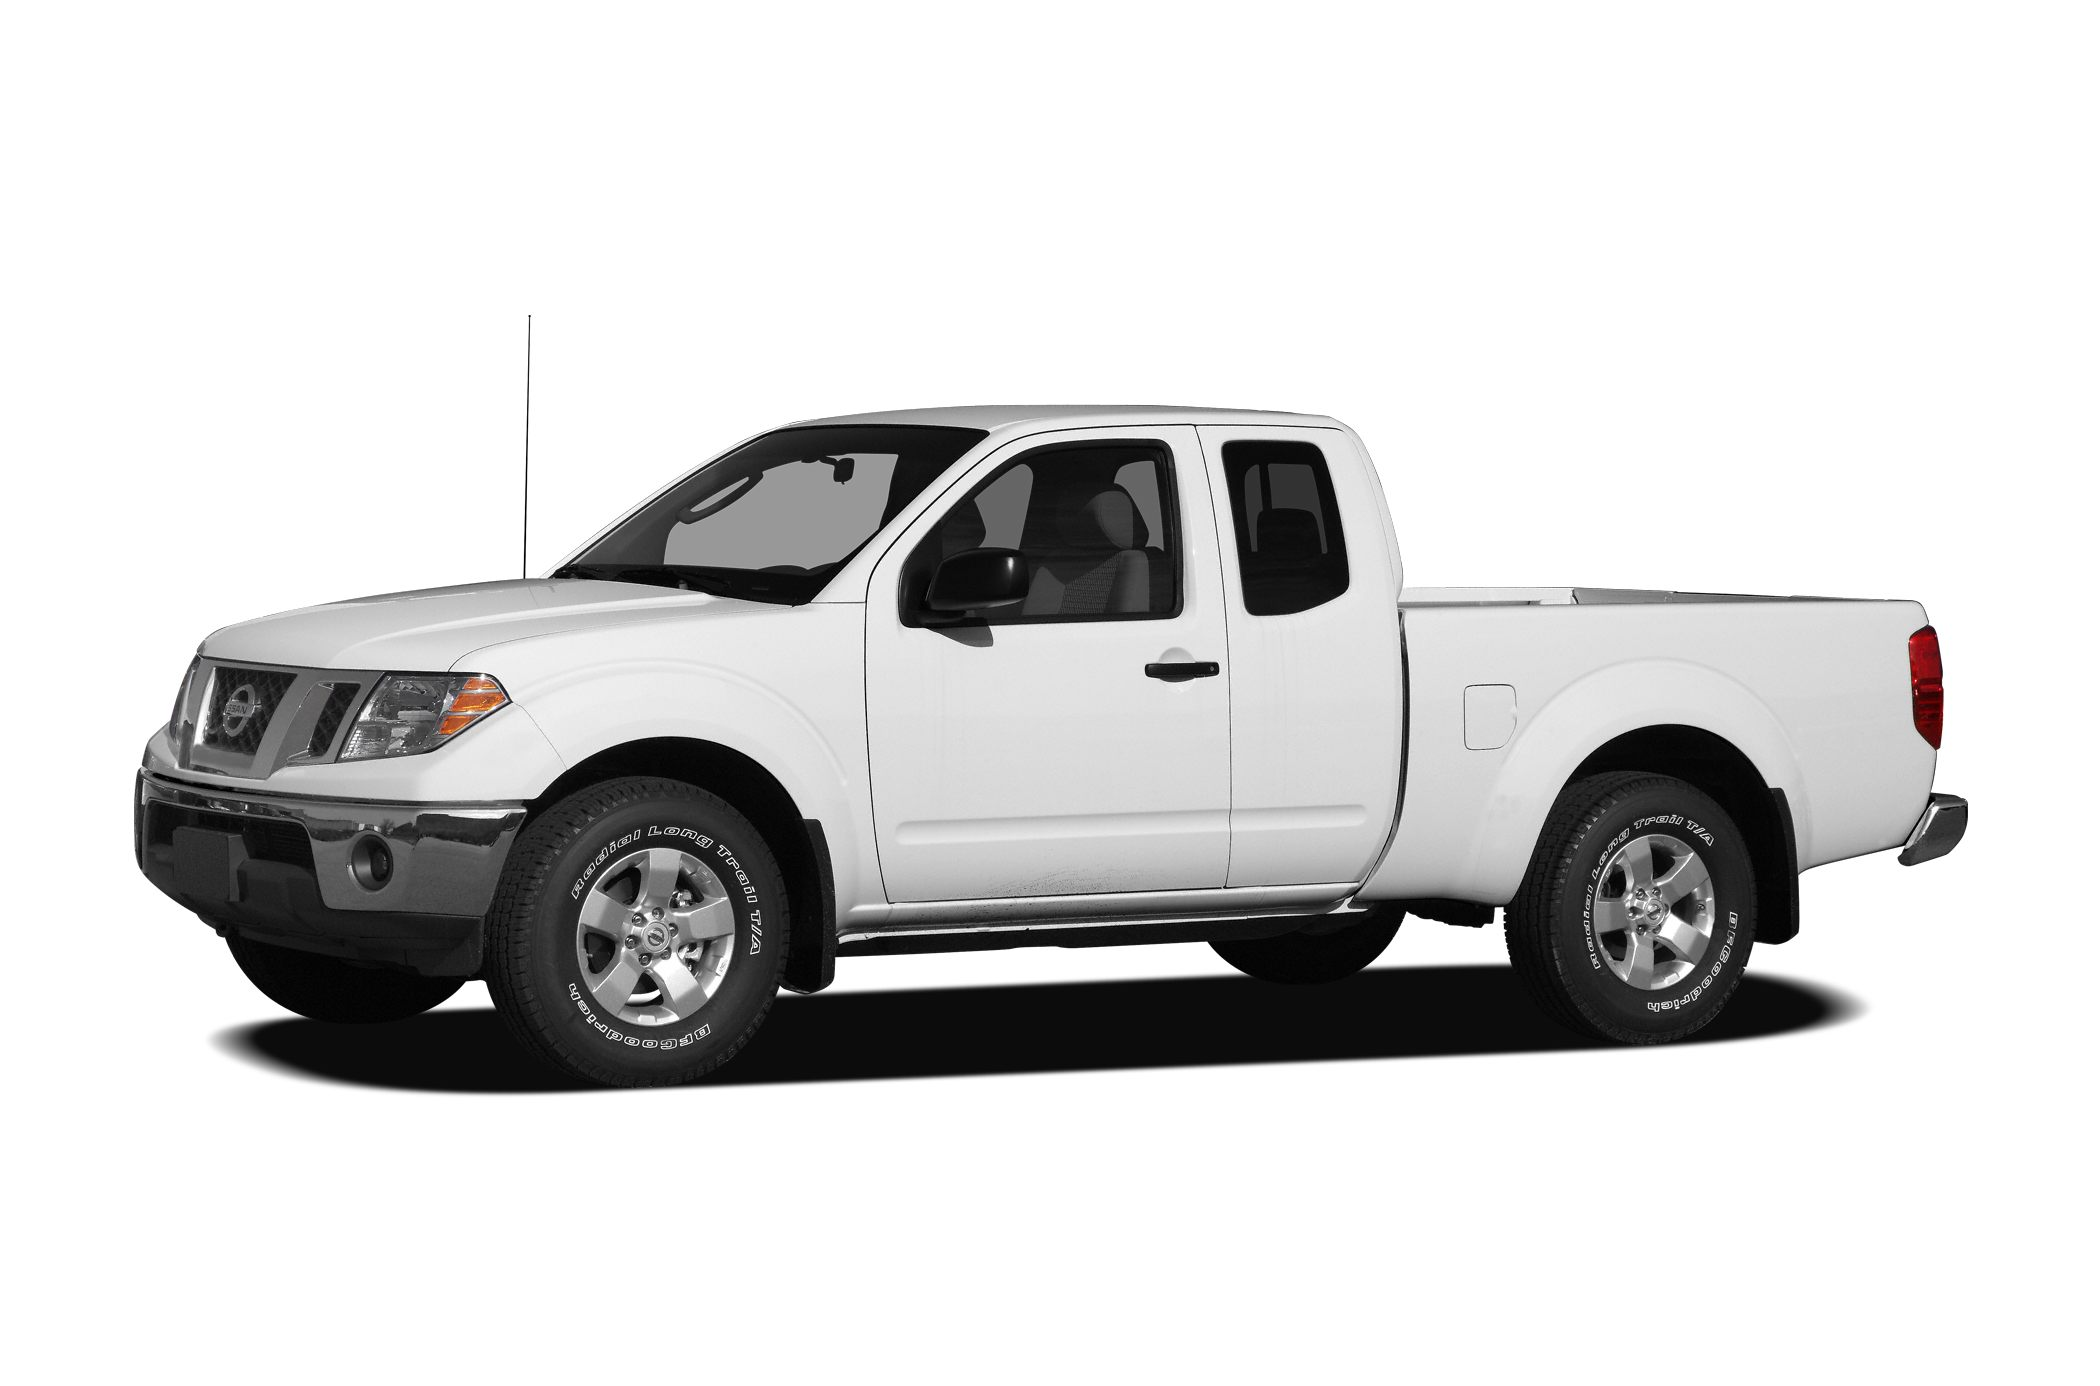 2010 Nissan Frontier SE Extended Cab Pickup for sale in Shelbyville for $17,981 with 53,910 miles.